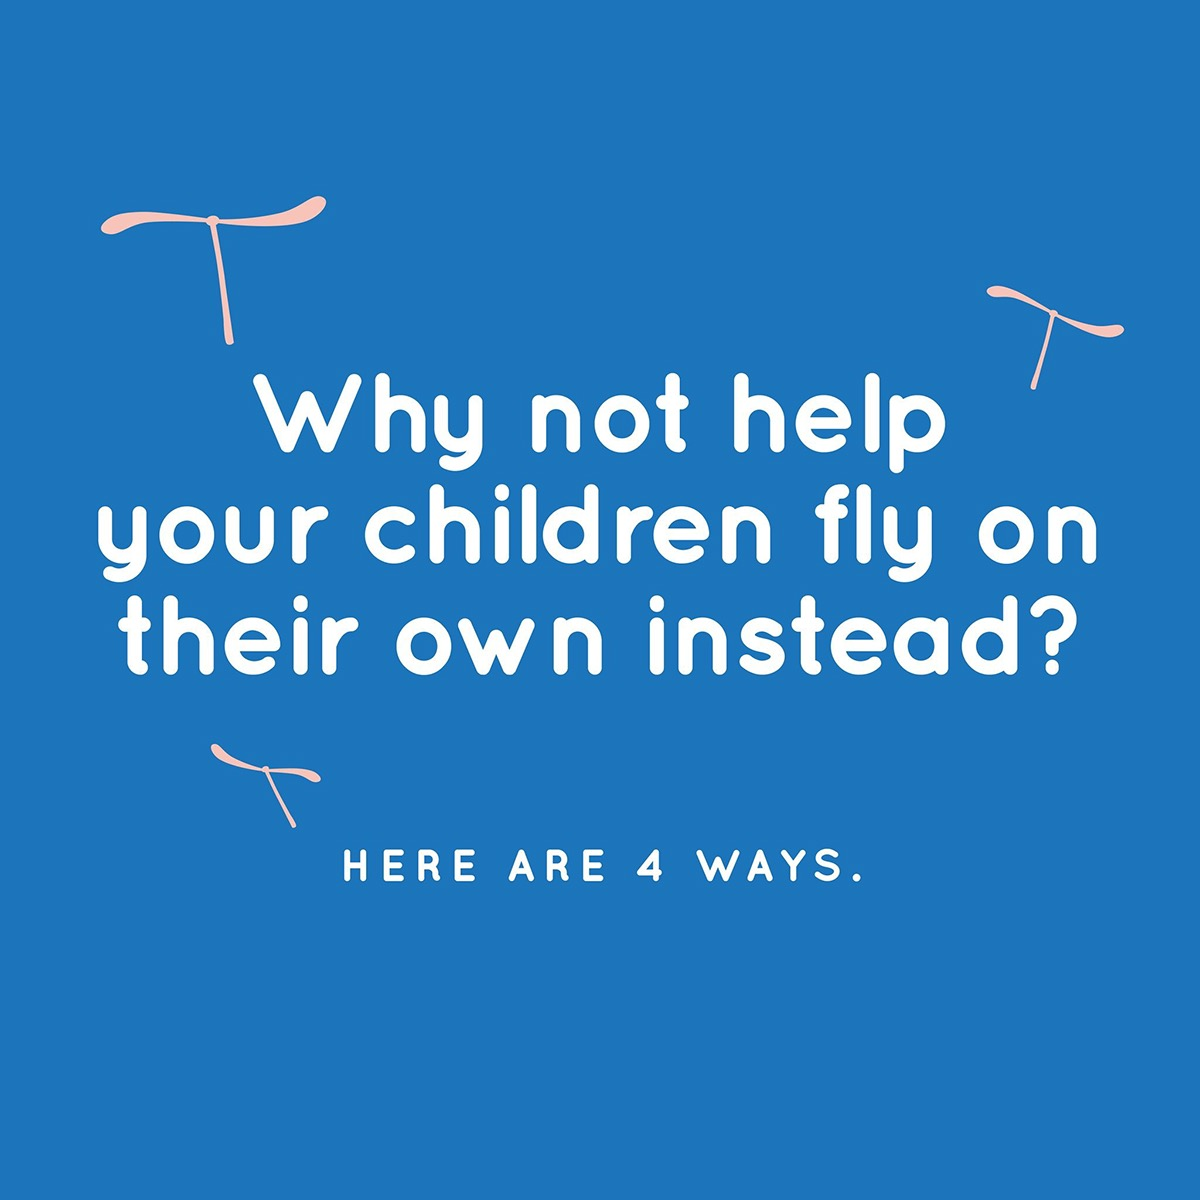 Helicopterparent infographic Education parent student helicopter parenting child helicoptering teacher campaign awareness